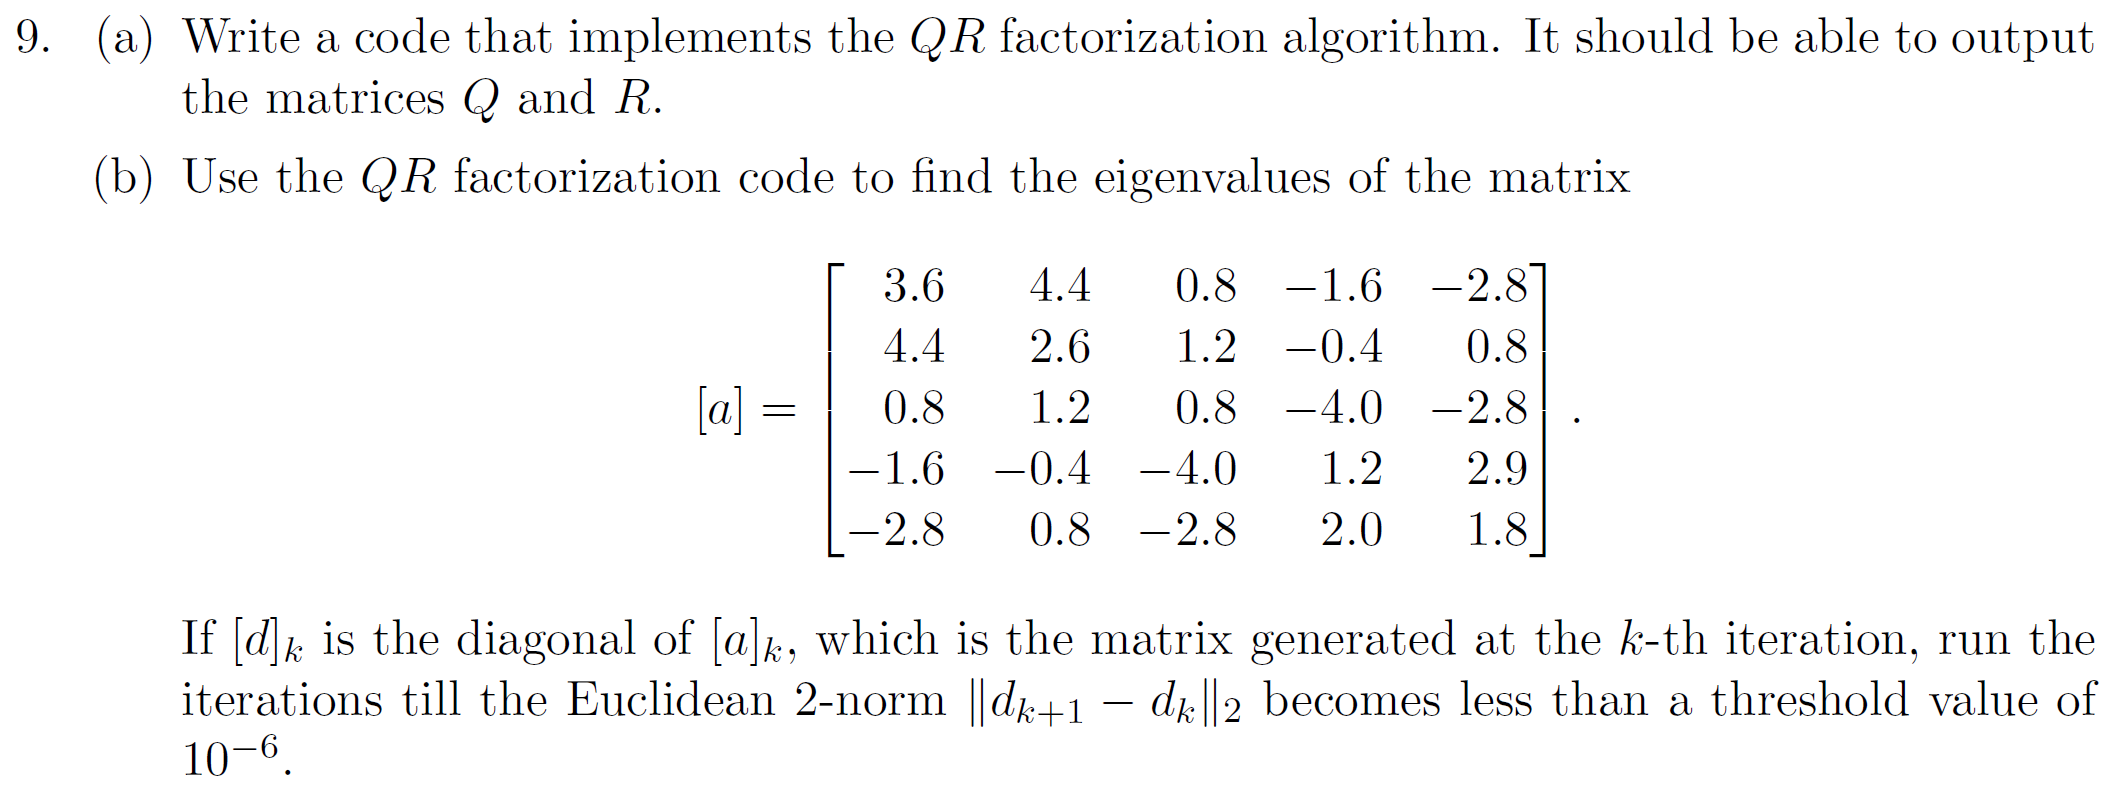 write a code in matlab that impiments the qr facto com expert answer